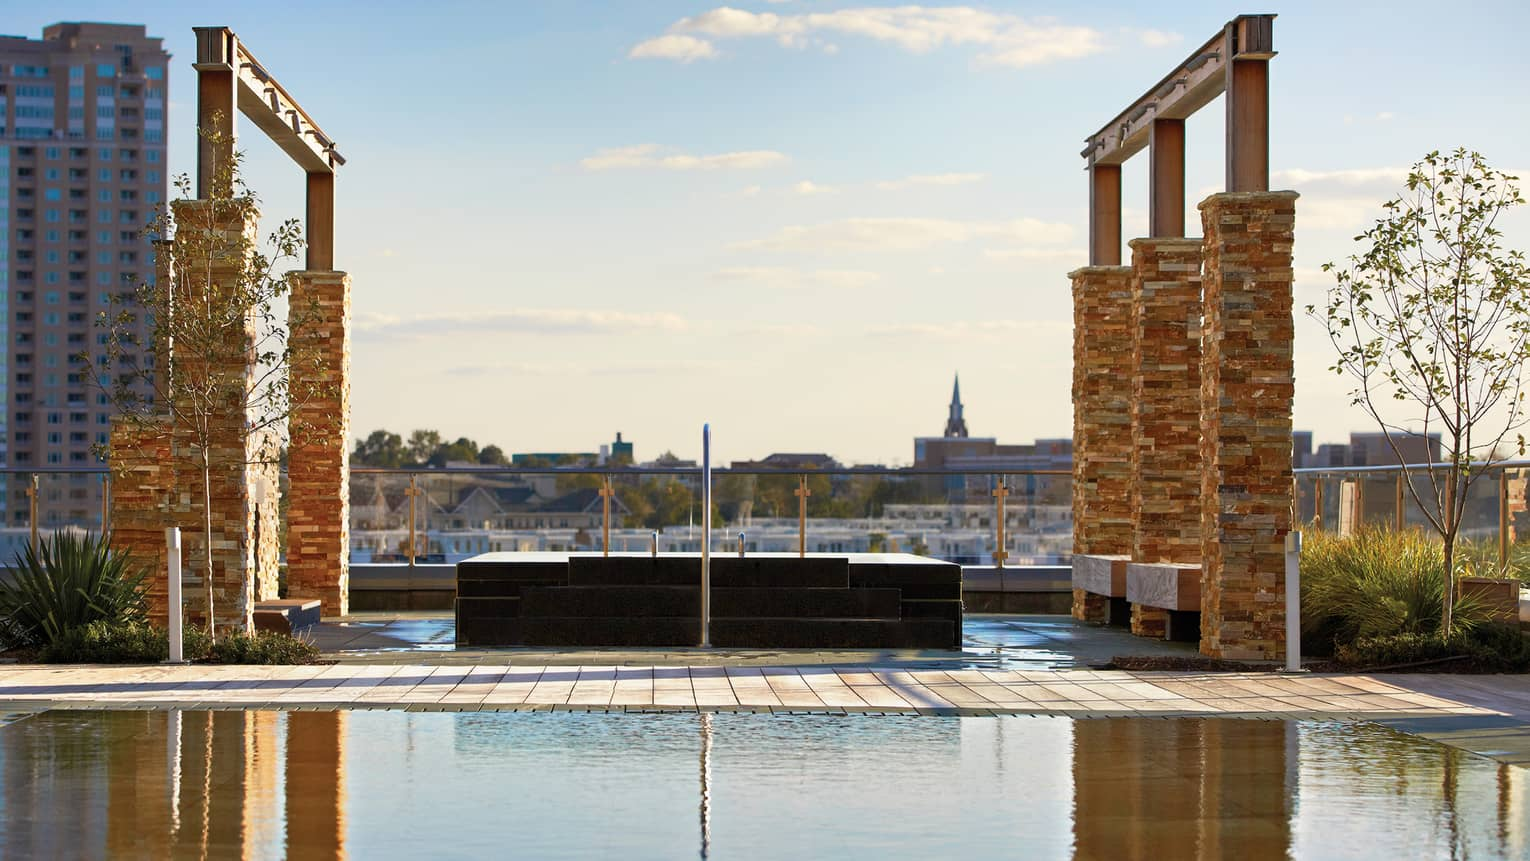 Tall brick pillars, frames over outdoor rooftop whirlpool and reflecting pool